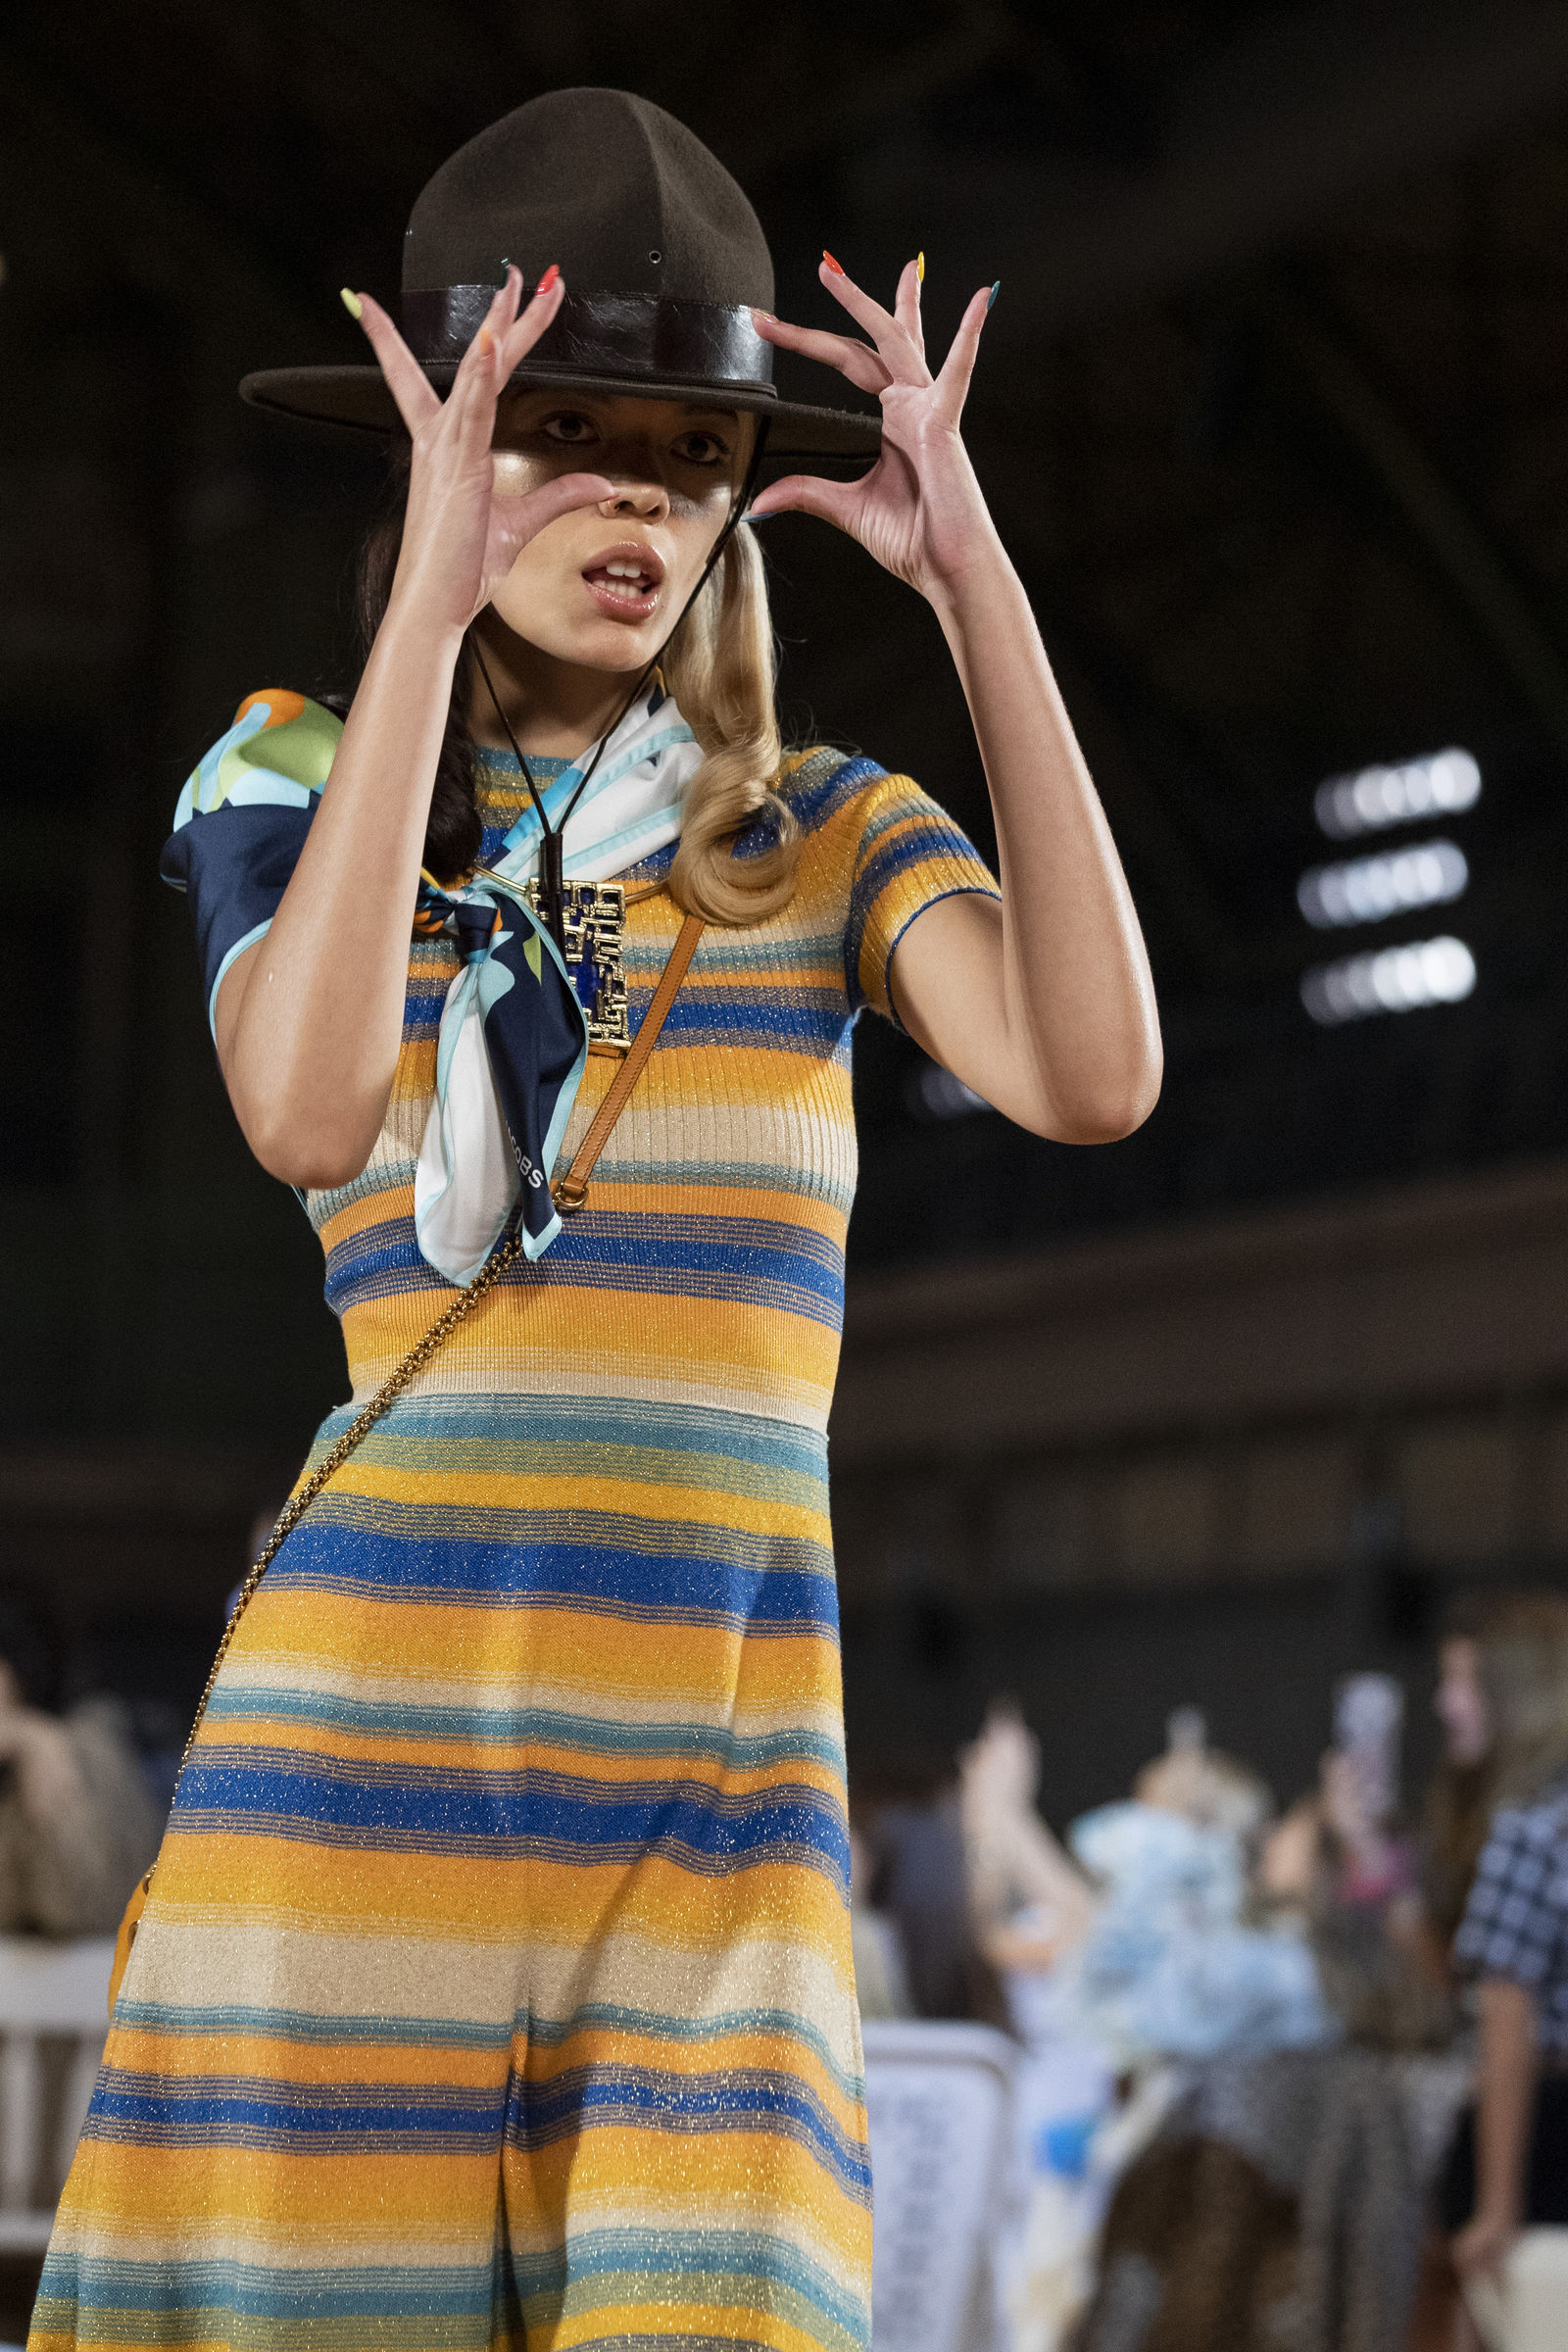 The Marc Jacobs collection is modeled during Fashion Week, Wednesday, Sept. 11, 2019, in New York. (AP Photo/Mary Altaffer)